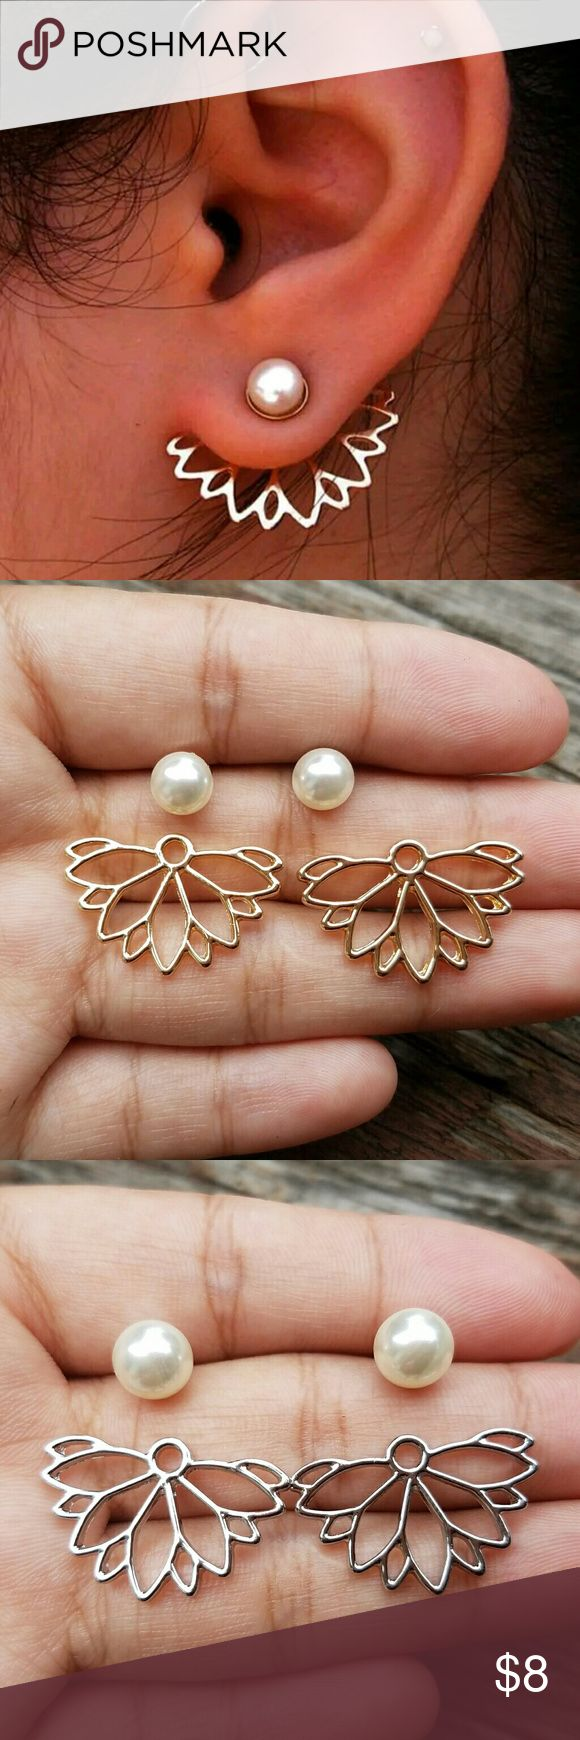 New faux pearl front back Lotus earrings Available in gold & silver earrings New Checkout my other items for sale Bundle & pay only one shipping. Jewelry Earrings